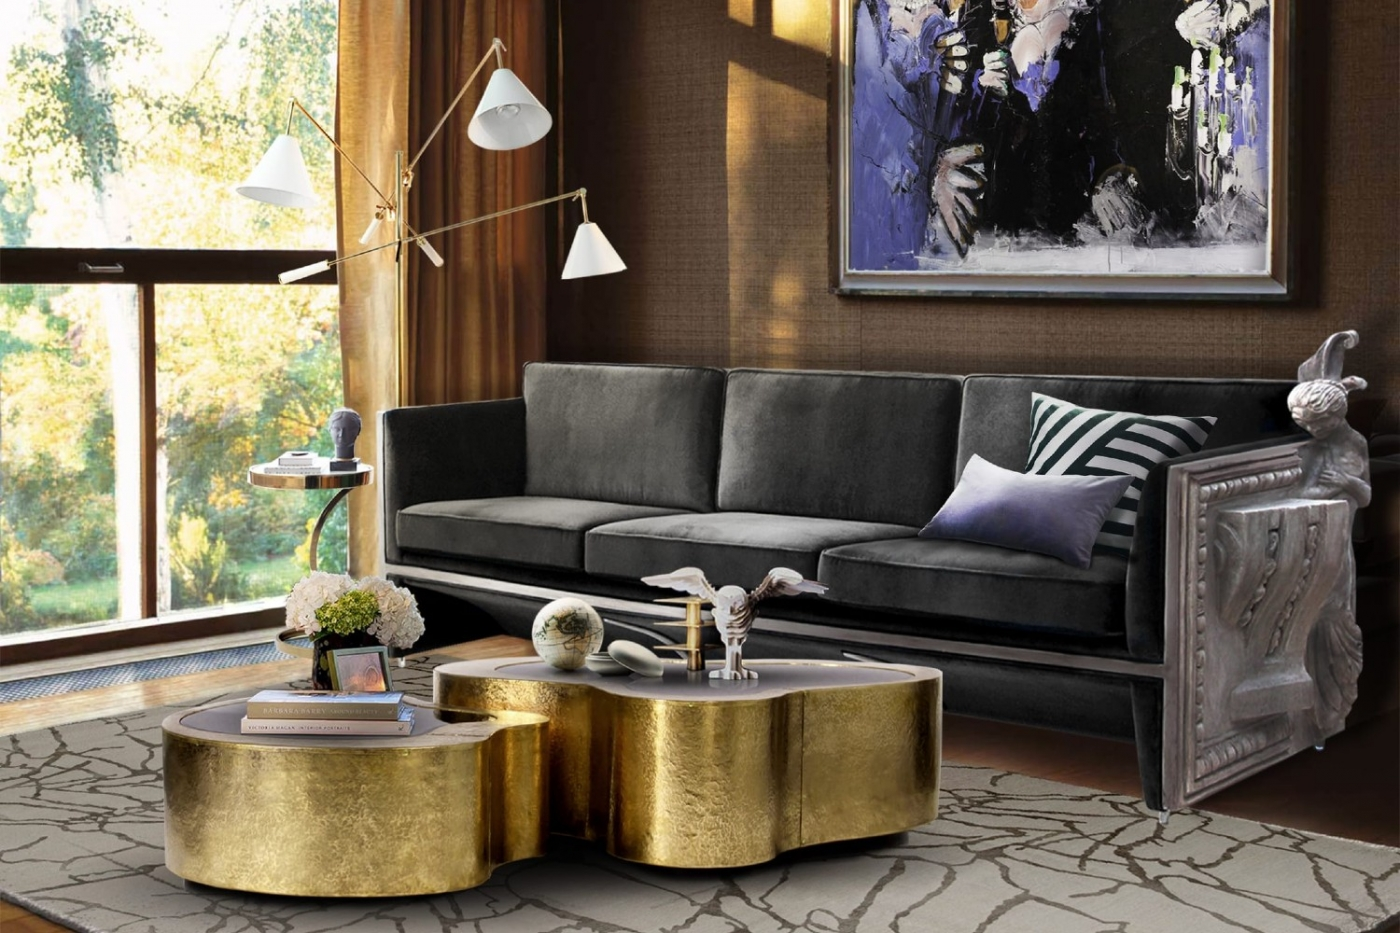 25 Modern Center Tables For An Art-Filled Home ft modern center table 25 Modern Center Tables For An Art-Filled Home 25 Modern Center Tables For An Art Filled Home ft 1400x933